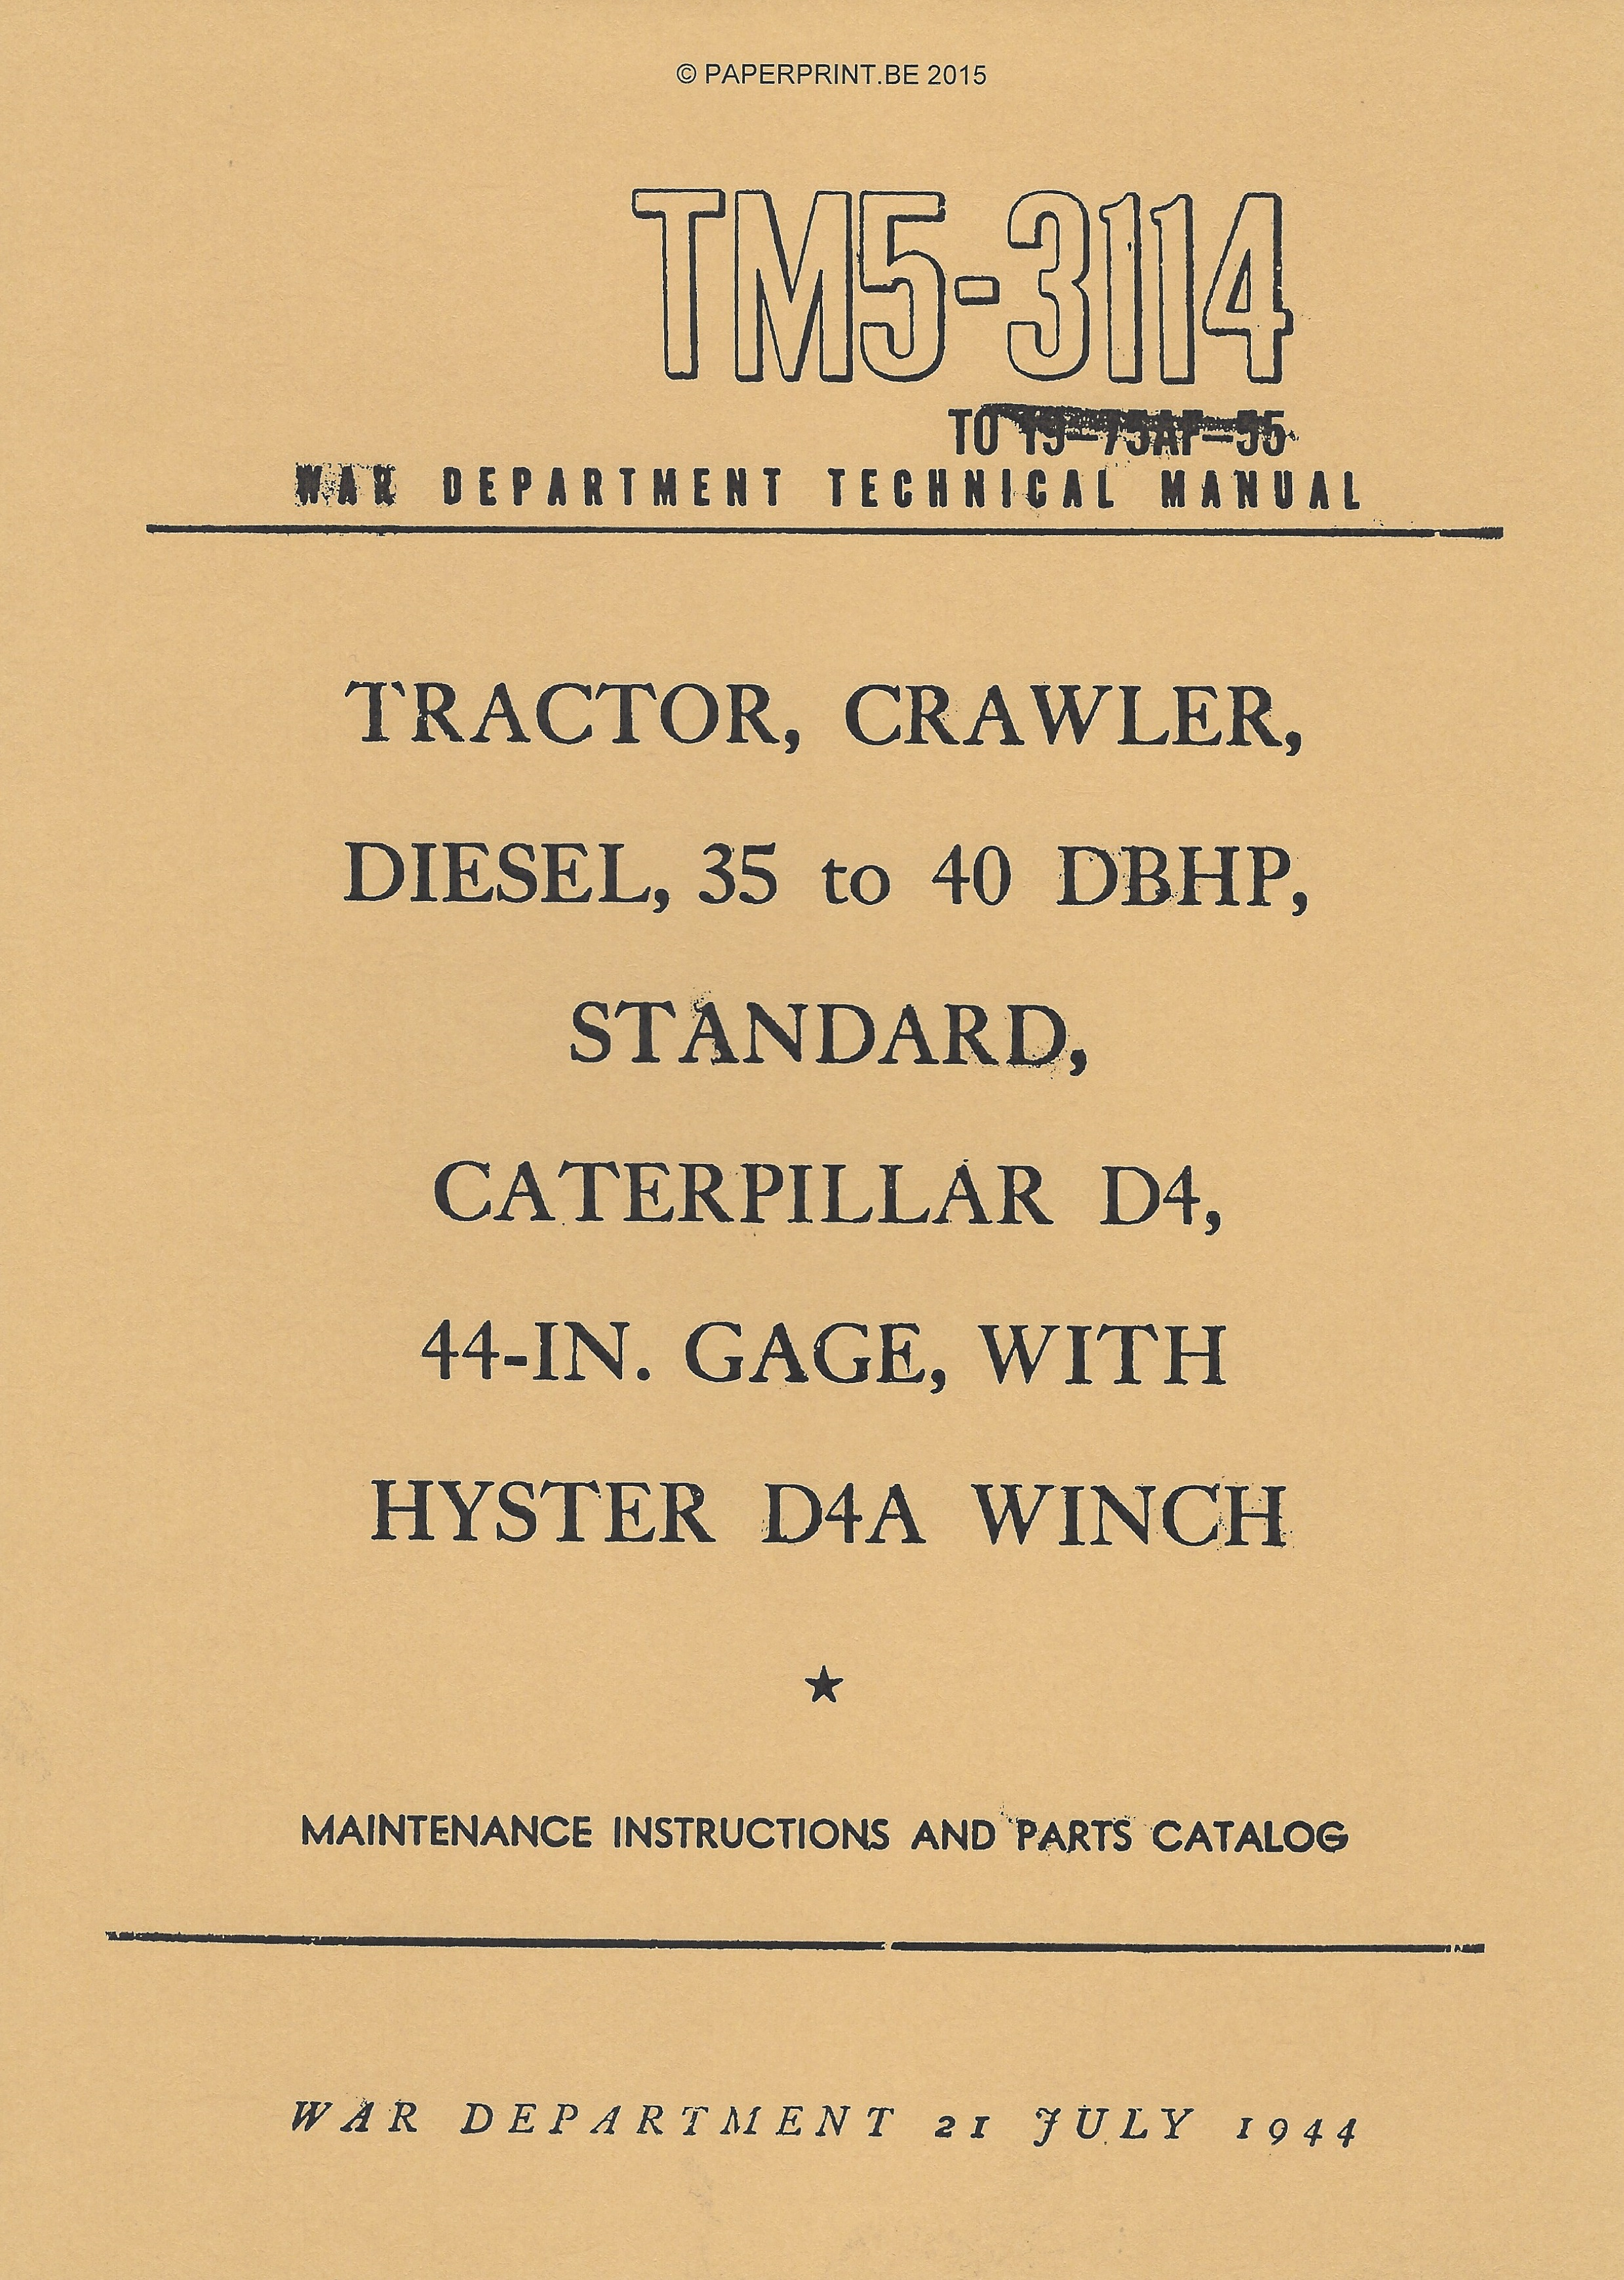 TM 5-3114 US CATERPILLAR D4 MAINTENANCE INSTRUCTIONS AND PARTS CATALOG